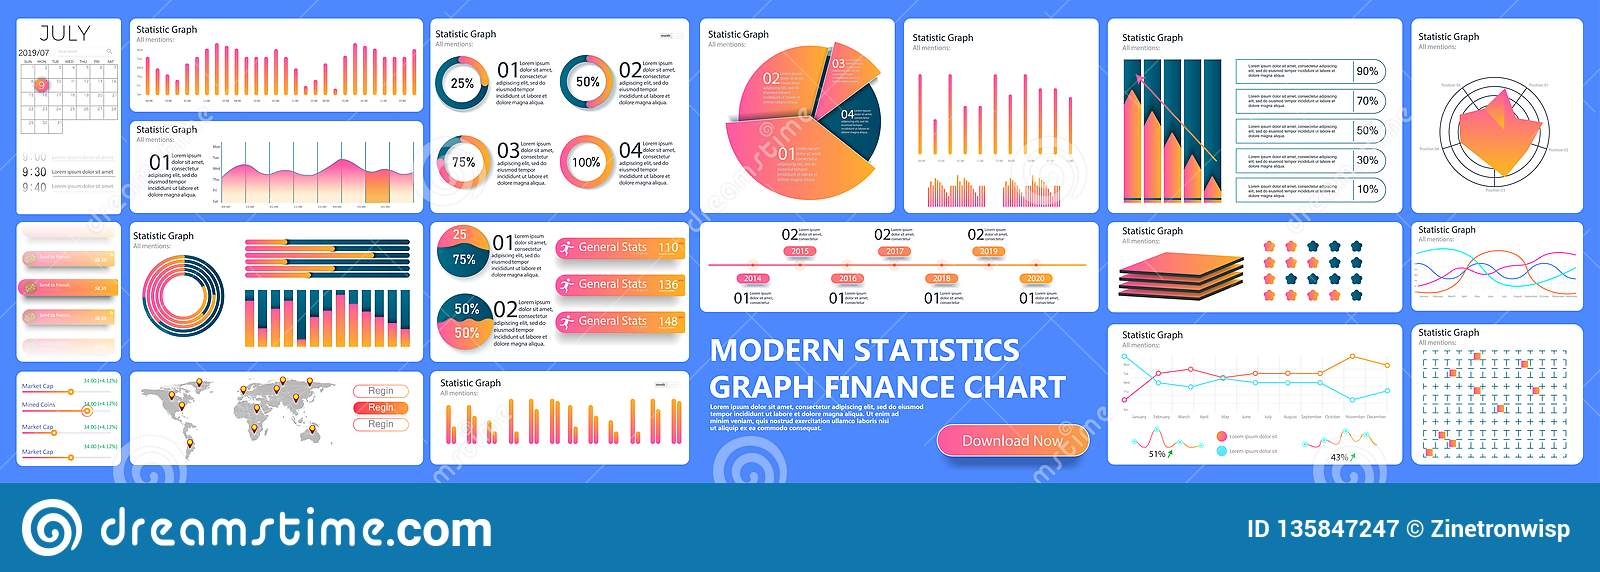 Infographic dashboard. Finance data analytic charts, trade statistic graph and modern business chart column. Analytics